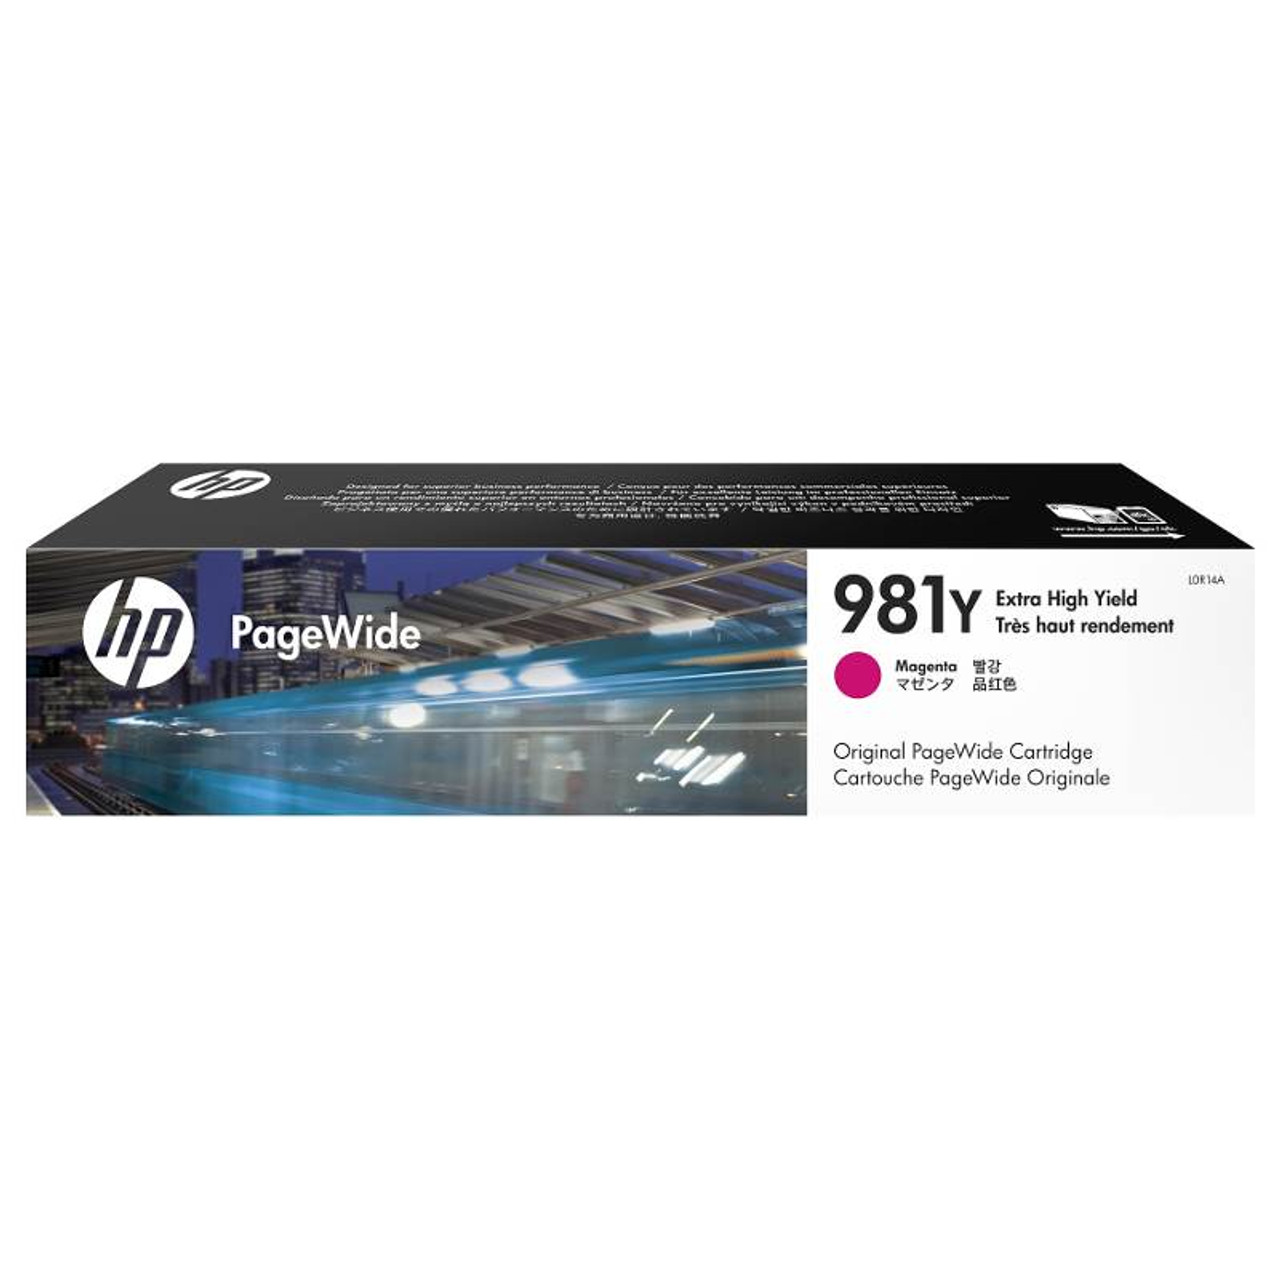 Image for HP 981Y Extra High Yield Magenta Original PageWide Cartridge (L0R14A) CX Computer Superstore